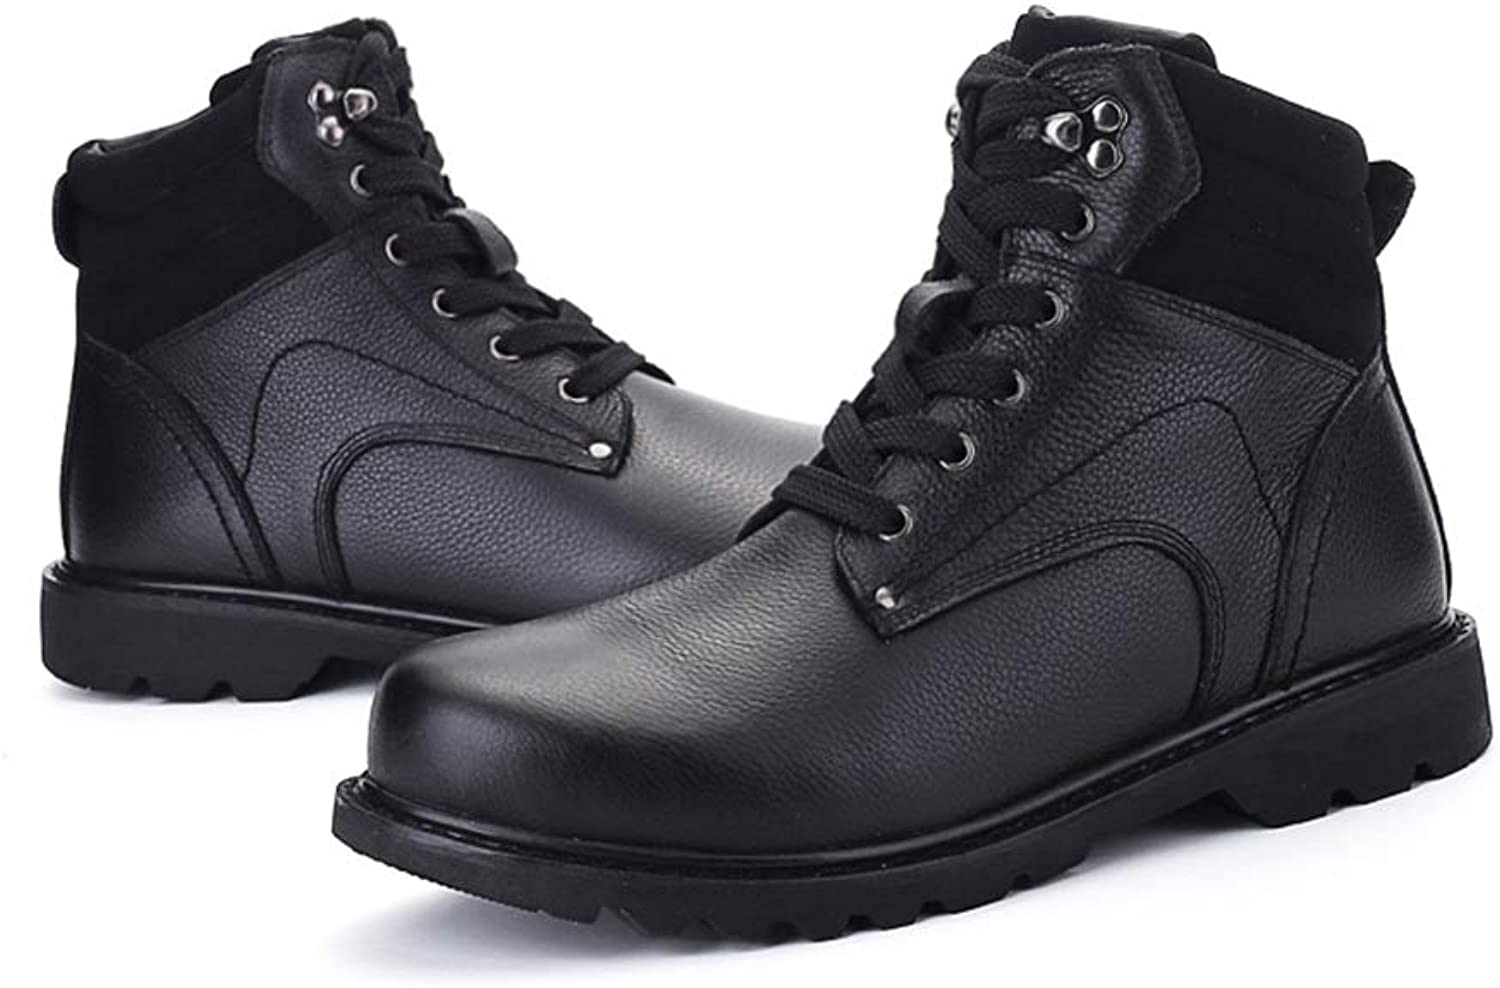 Ying xinguang Herren Modische Stiefeletten Stiefeletten Stiefeletten Casual Winter High Top Outdoor Schnürung Outsole Arbeitsschuhe (Color : Schwarz, Größe : 48 EU) B07MQSPD68  622cac